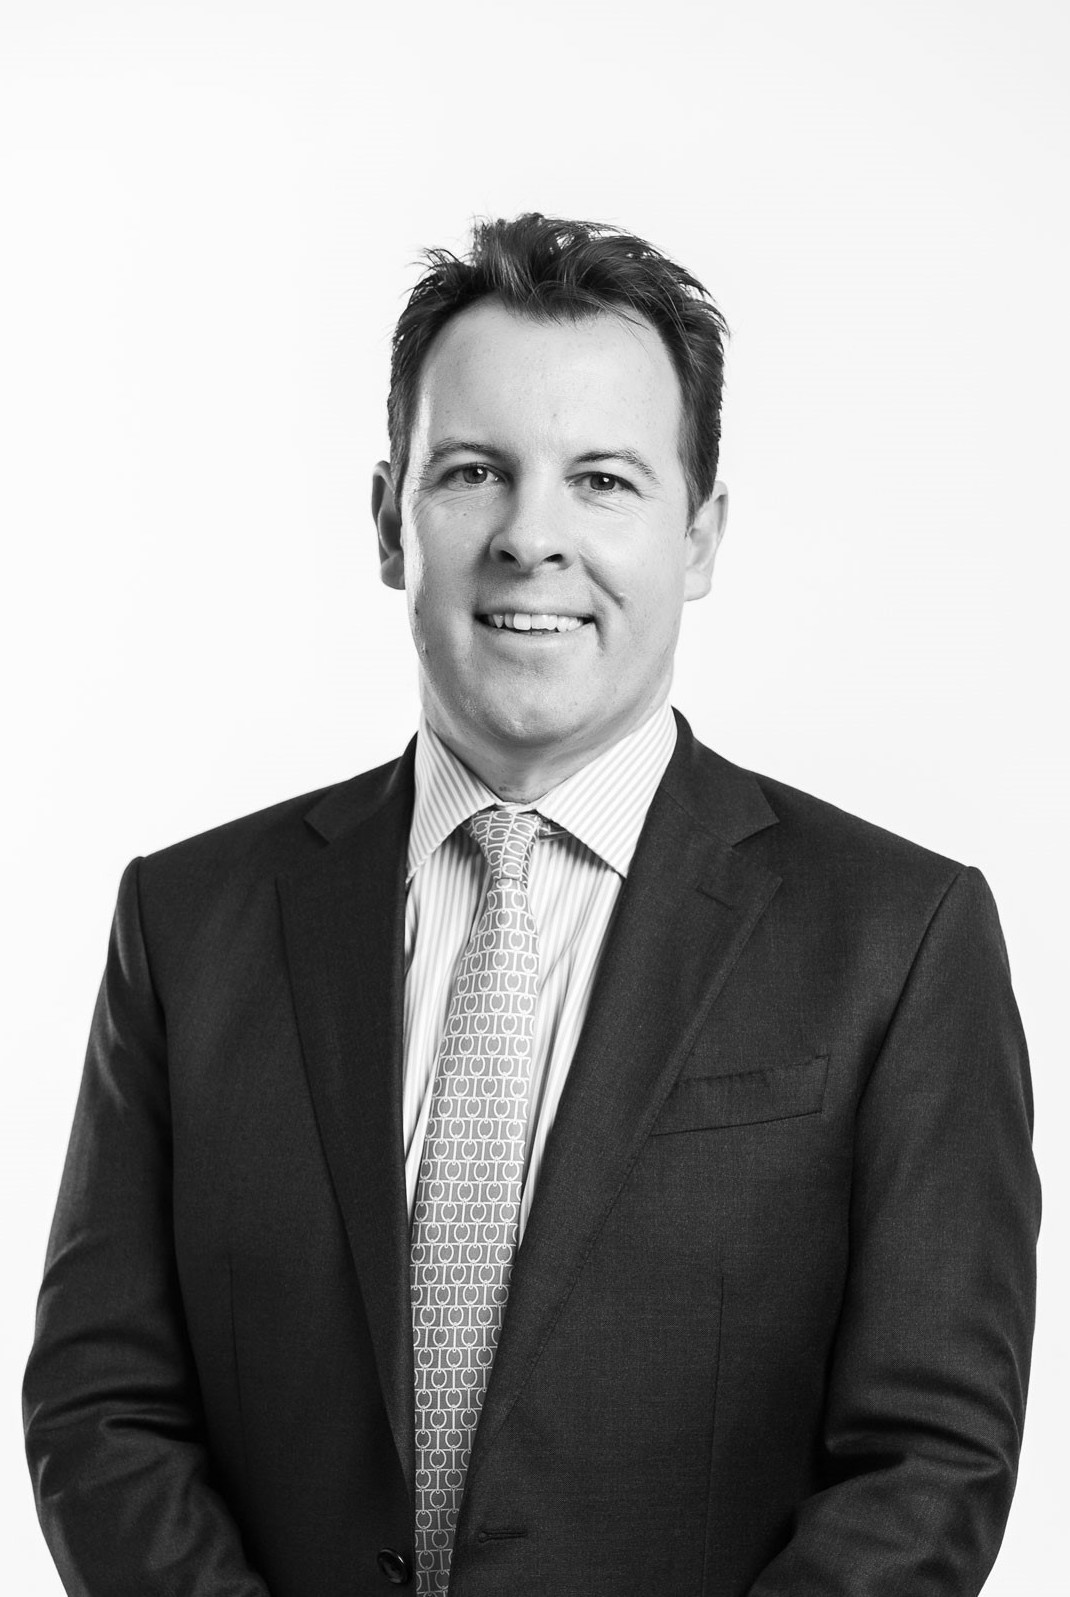 Photo of Toby Osborne, Head of Client Relation for Navag8